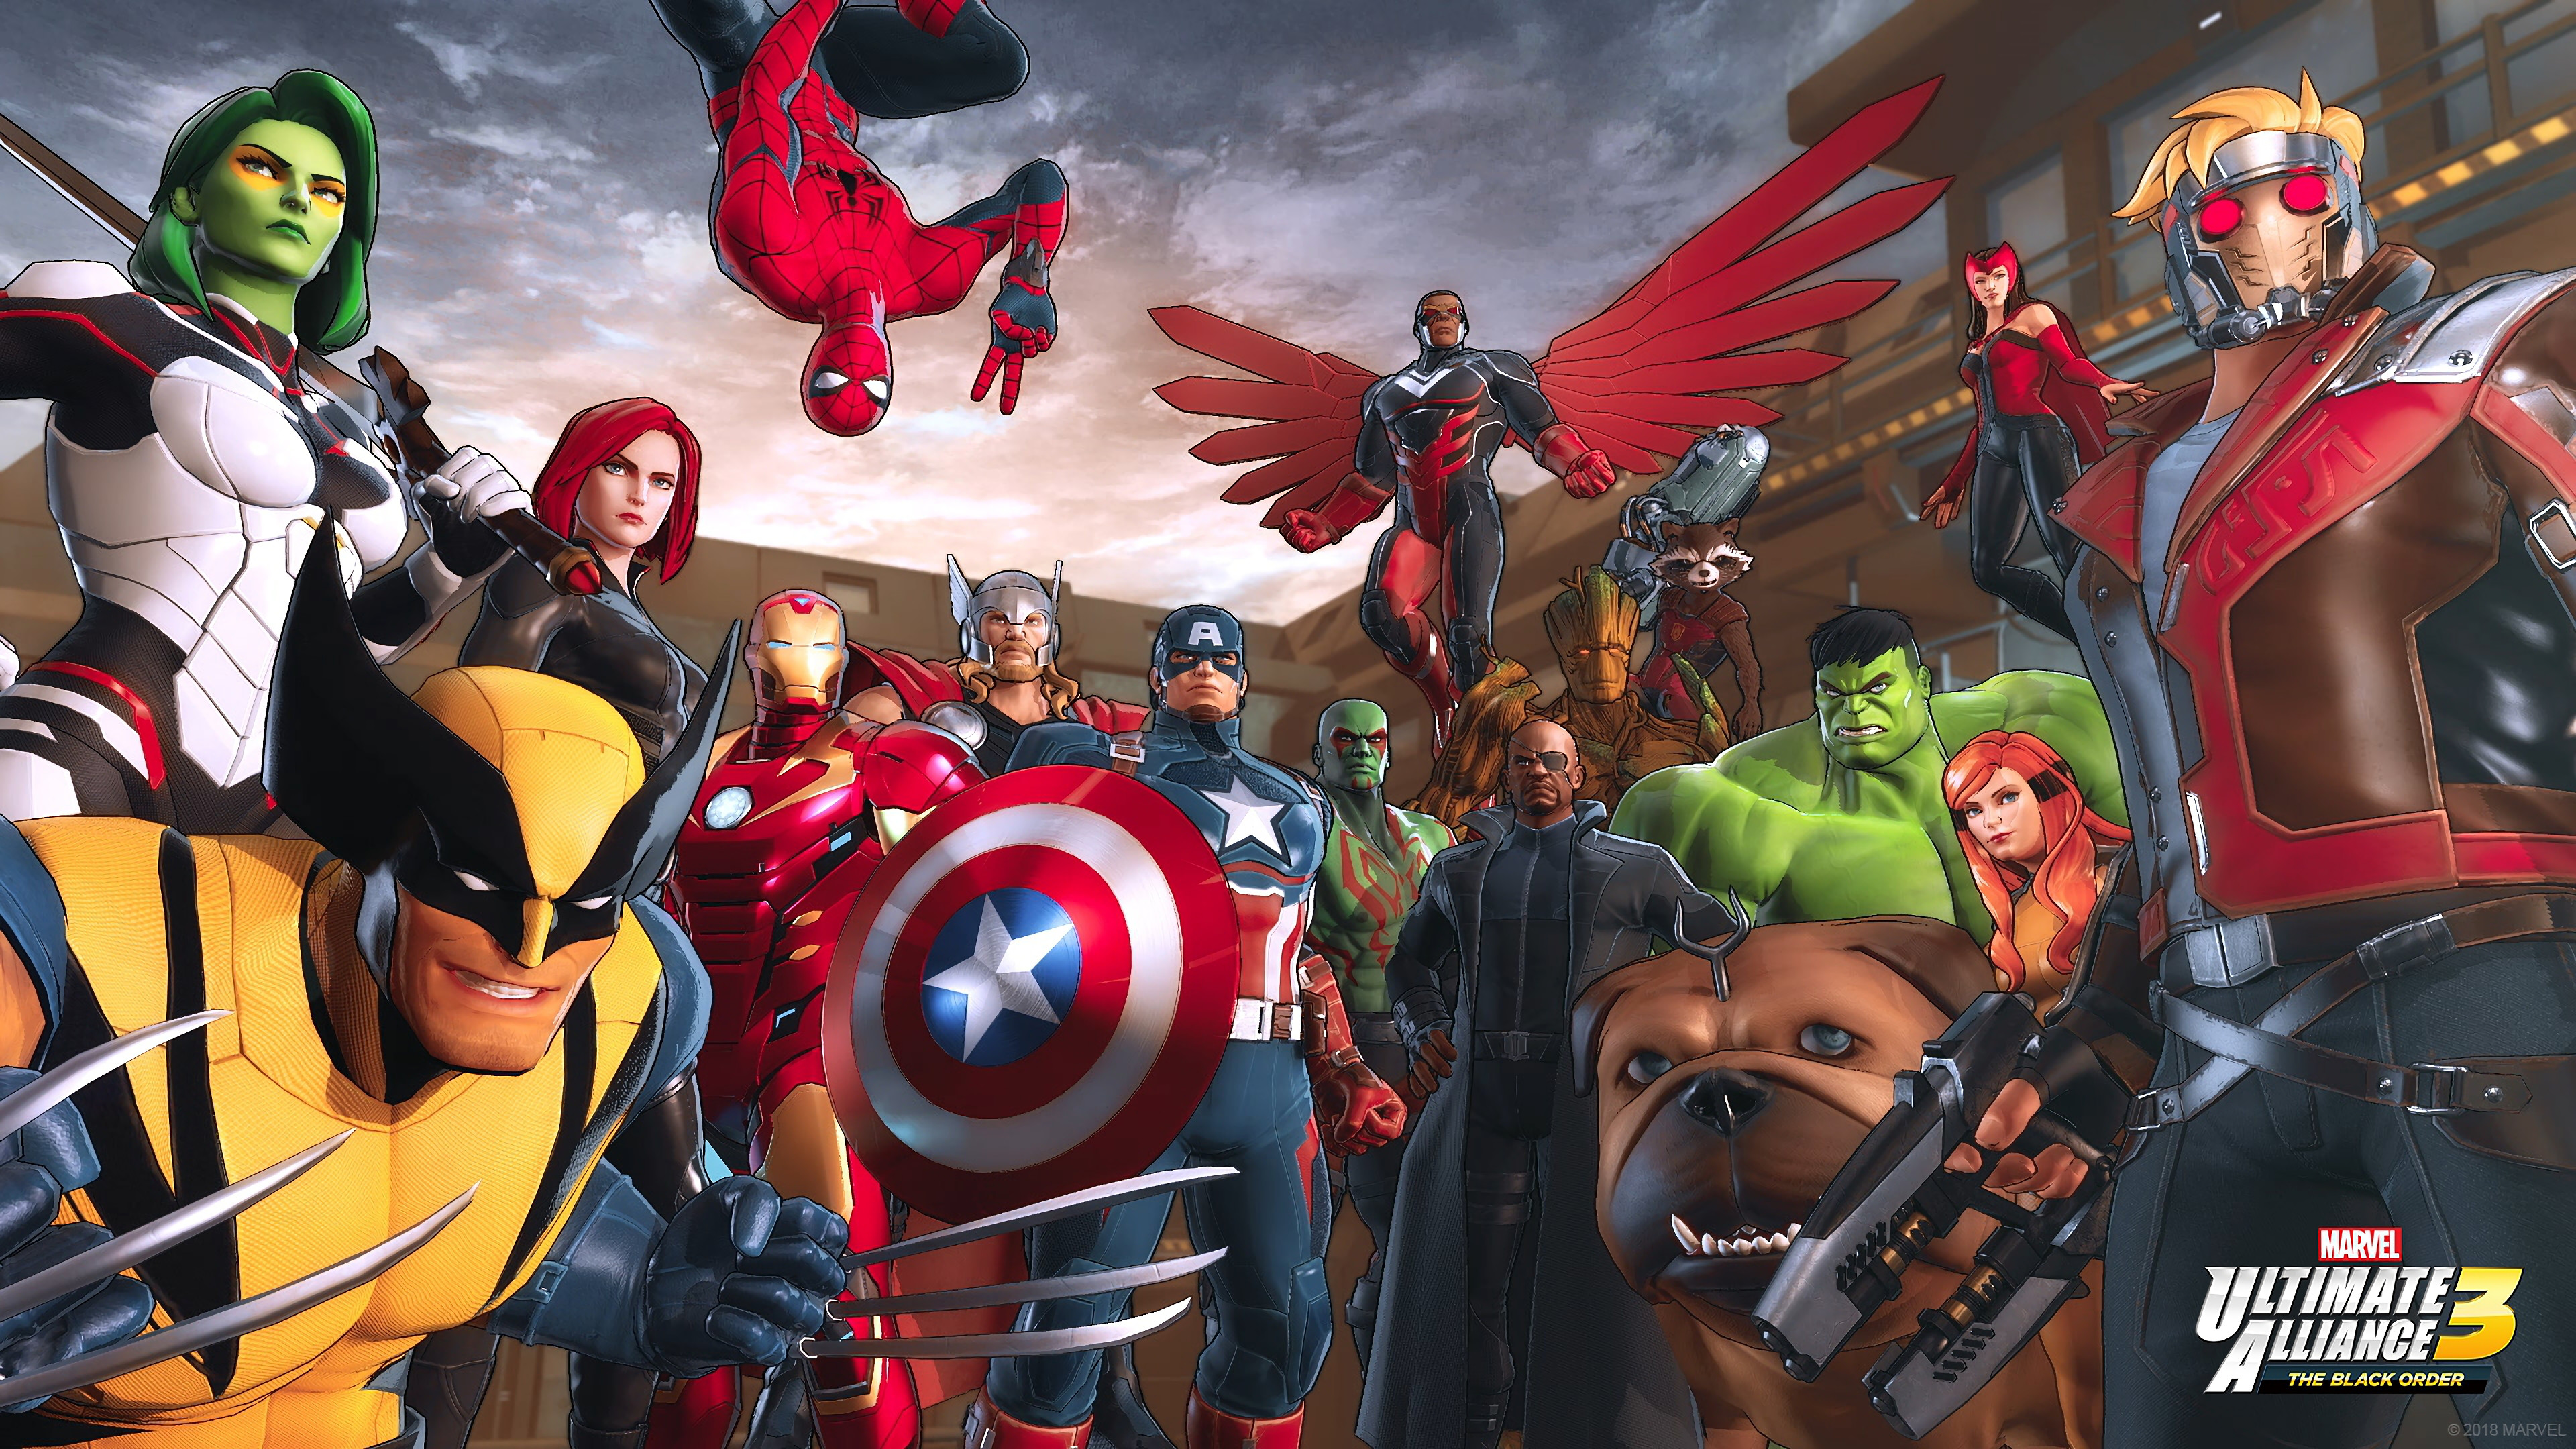 SDCC is here! Marvel panel, GOT panel, Exclusive preview night coverage and more ...